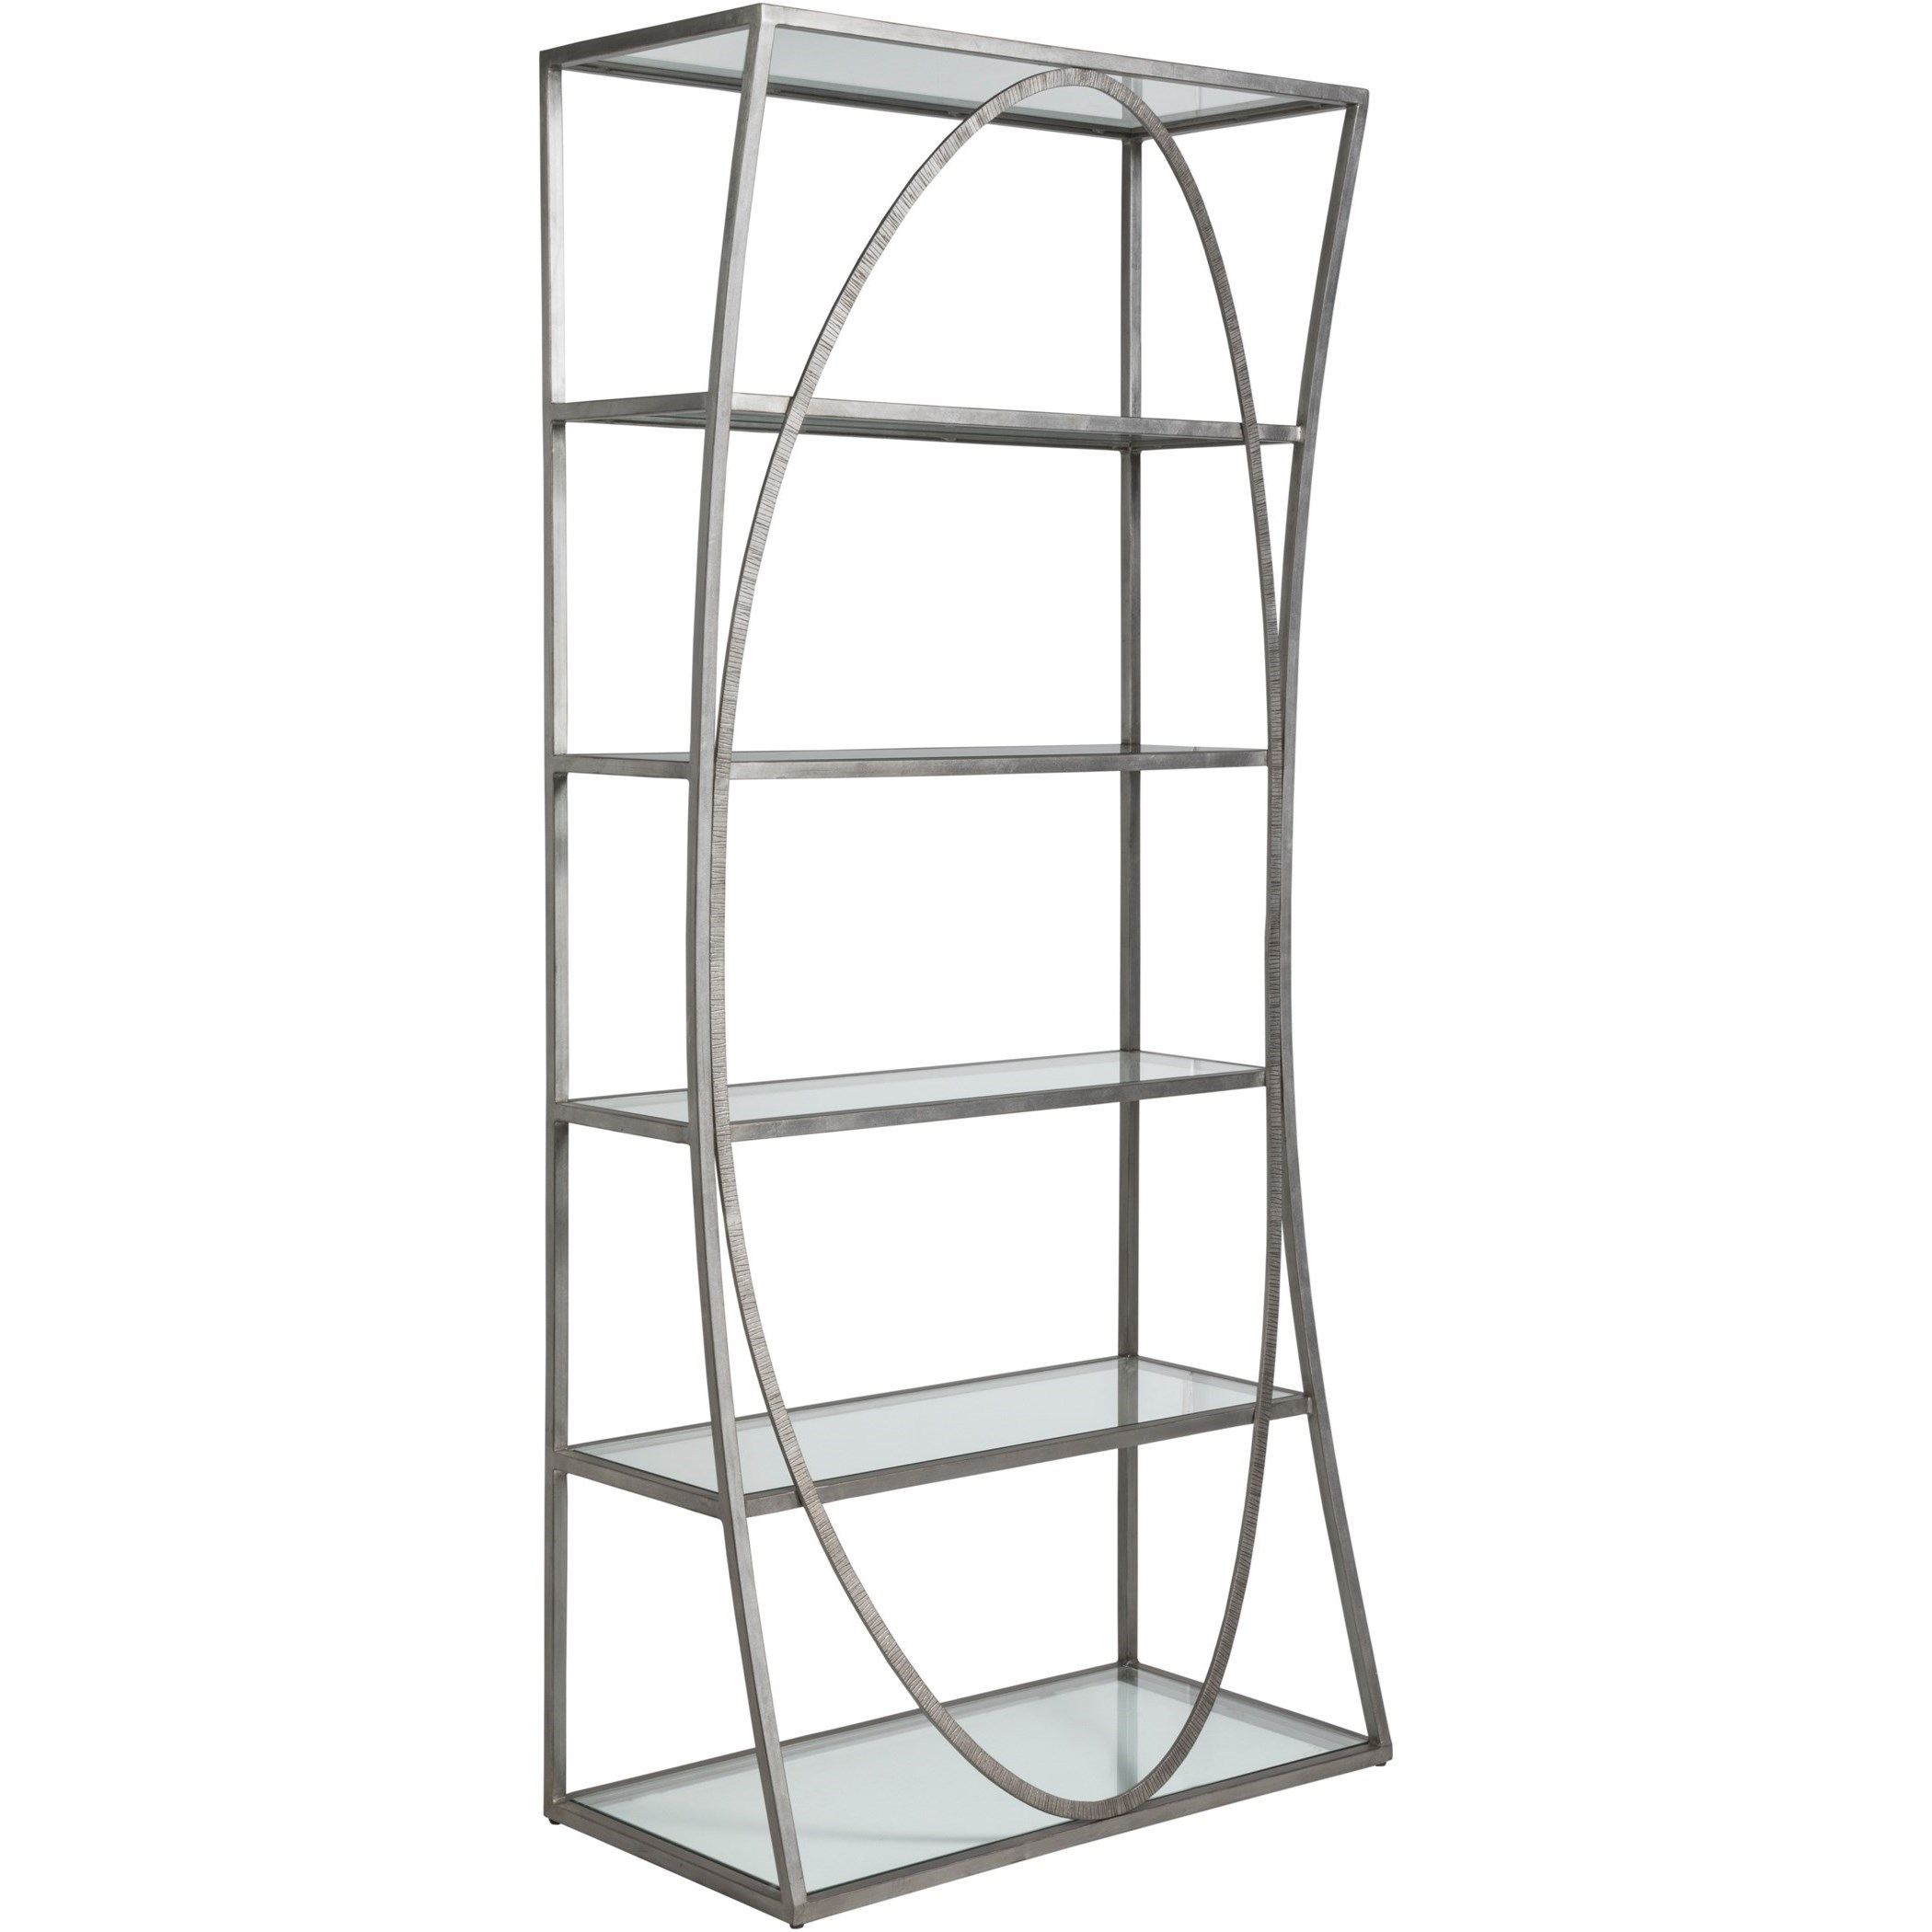 Artistica Metal Ellipse Etagere by Artistica at Alison Craig Home Furnishings